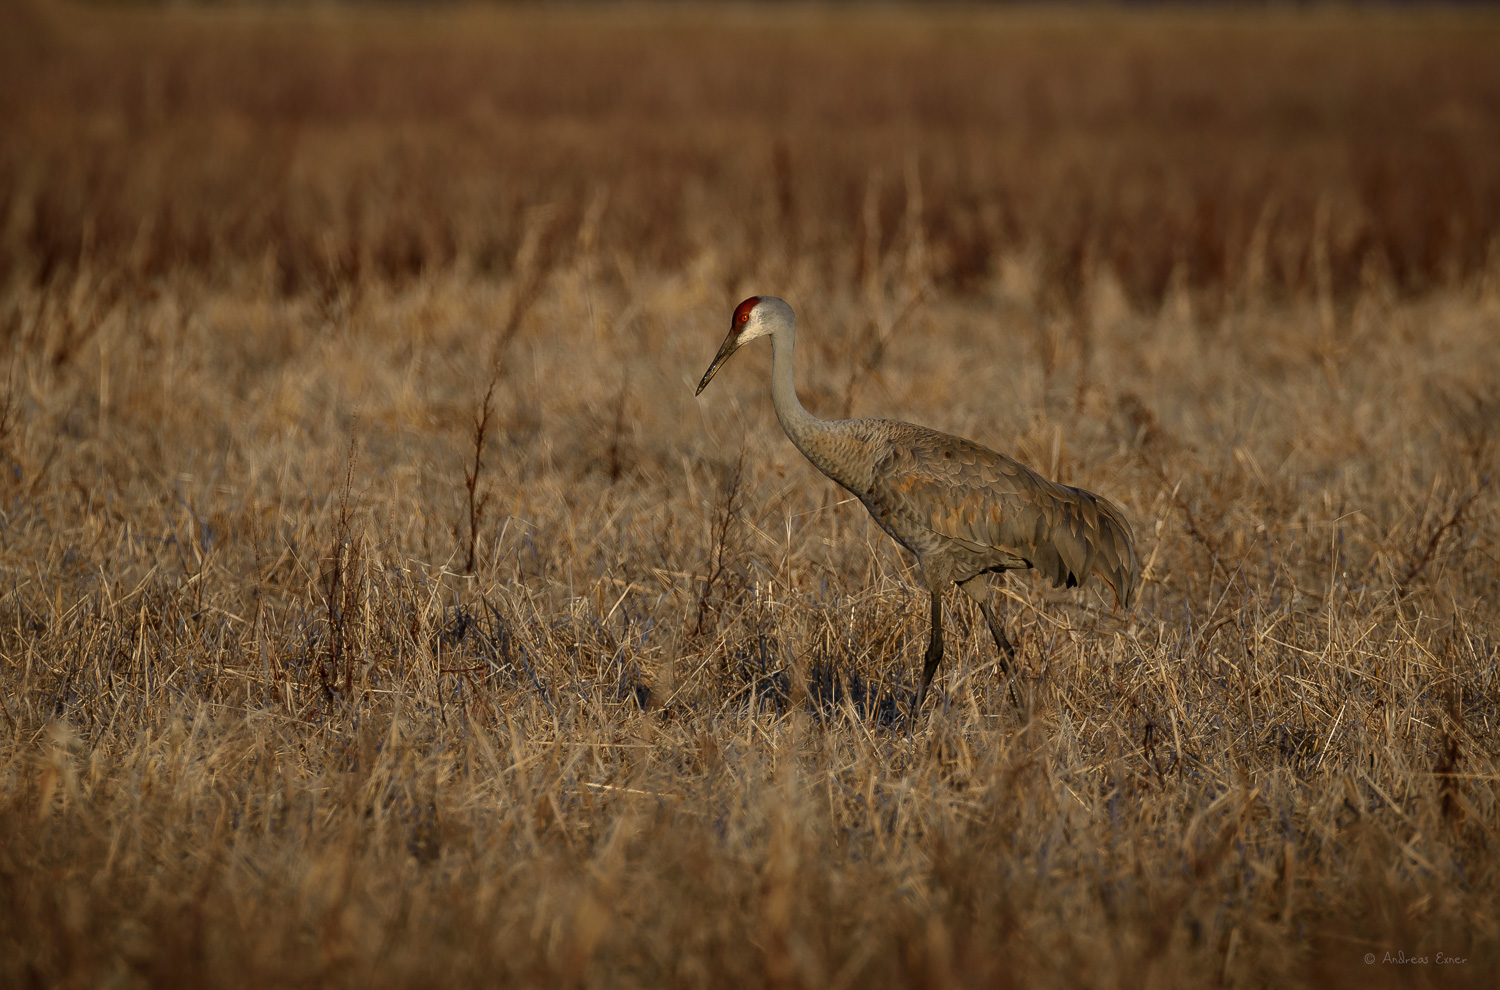 Sandhill Crane, Green Island Wetlands, near Mississippi River, Iowa